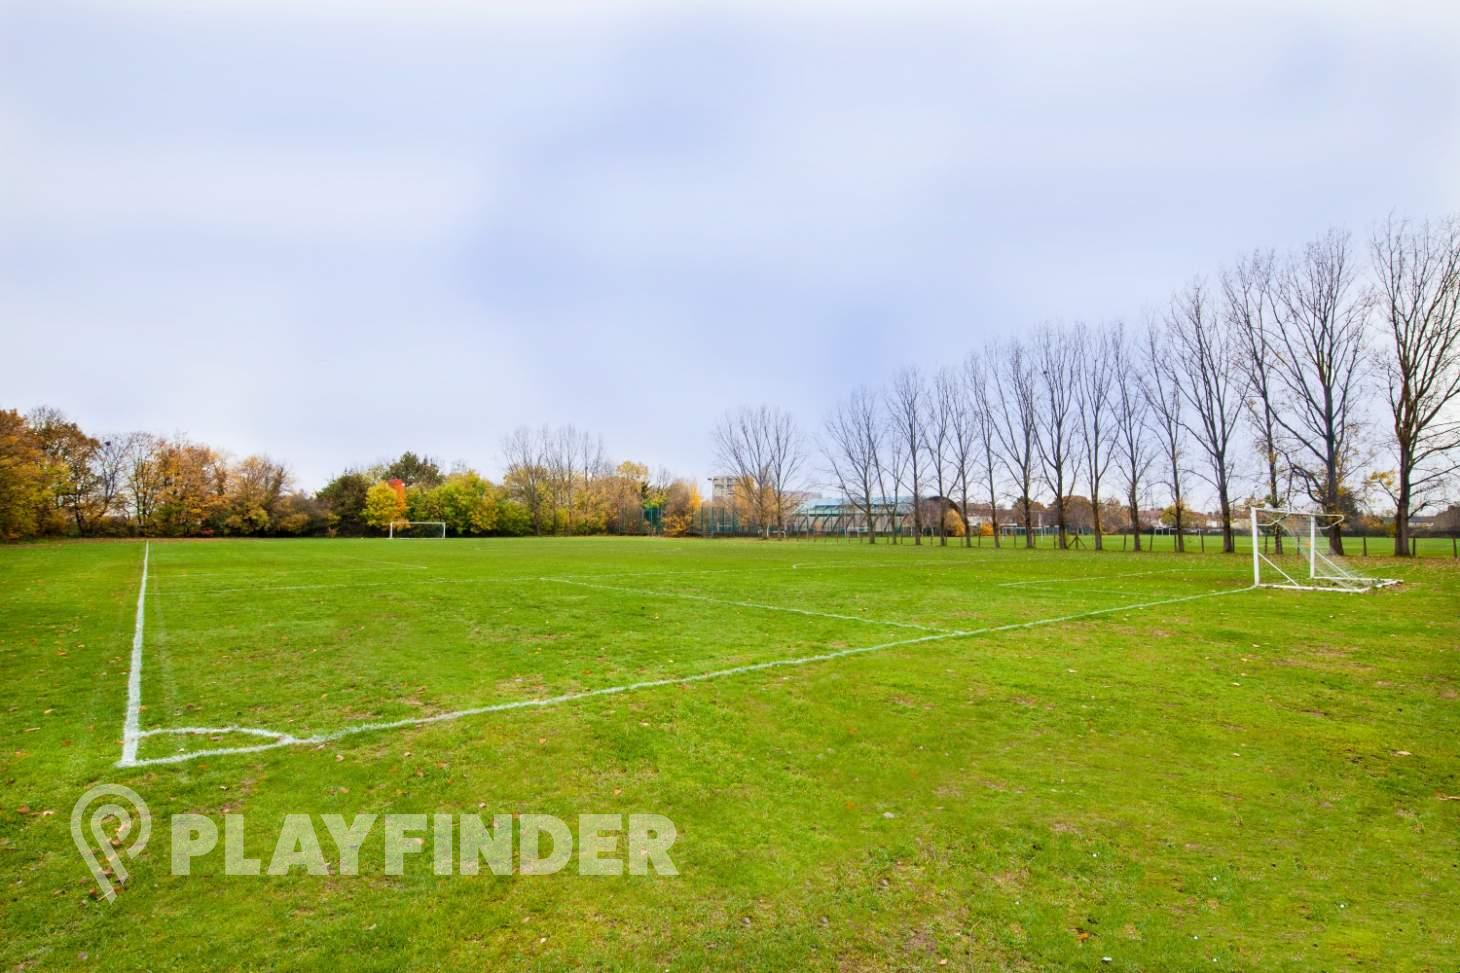 Cavendish Sports Ground 11 a side | Grass football pitch